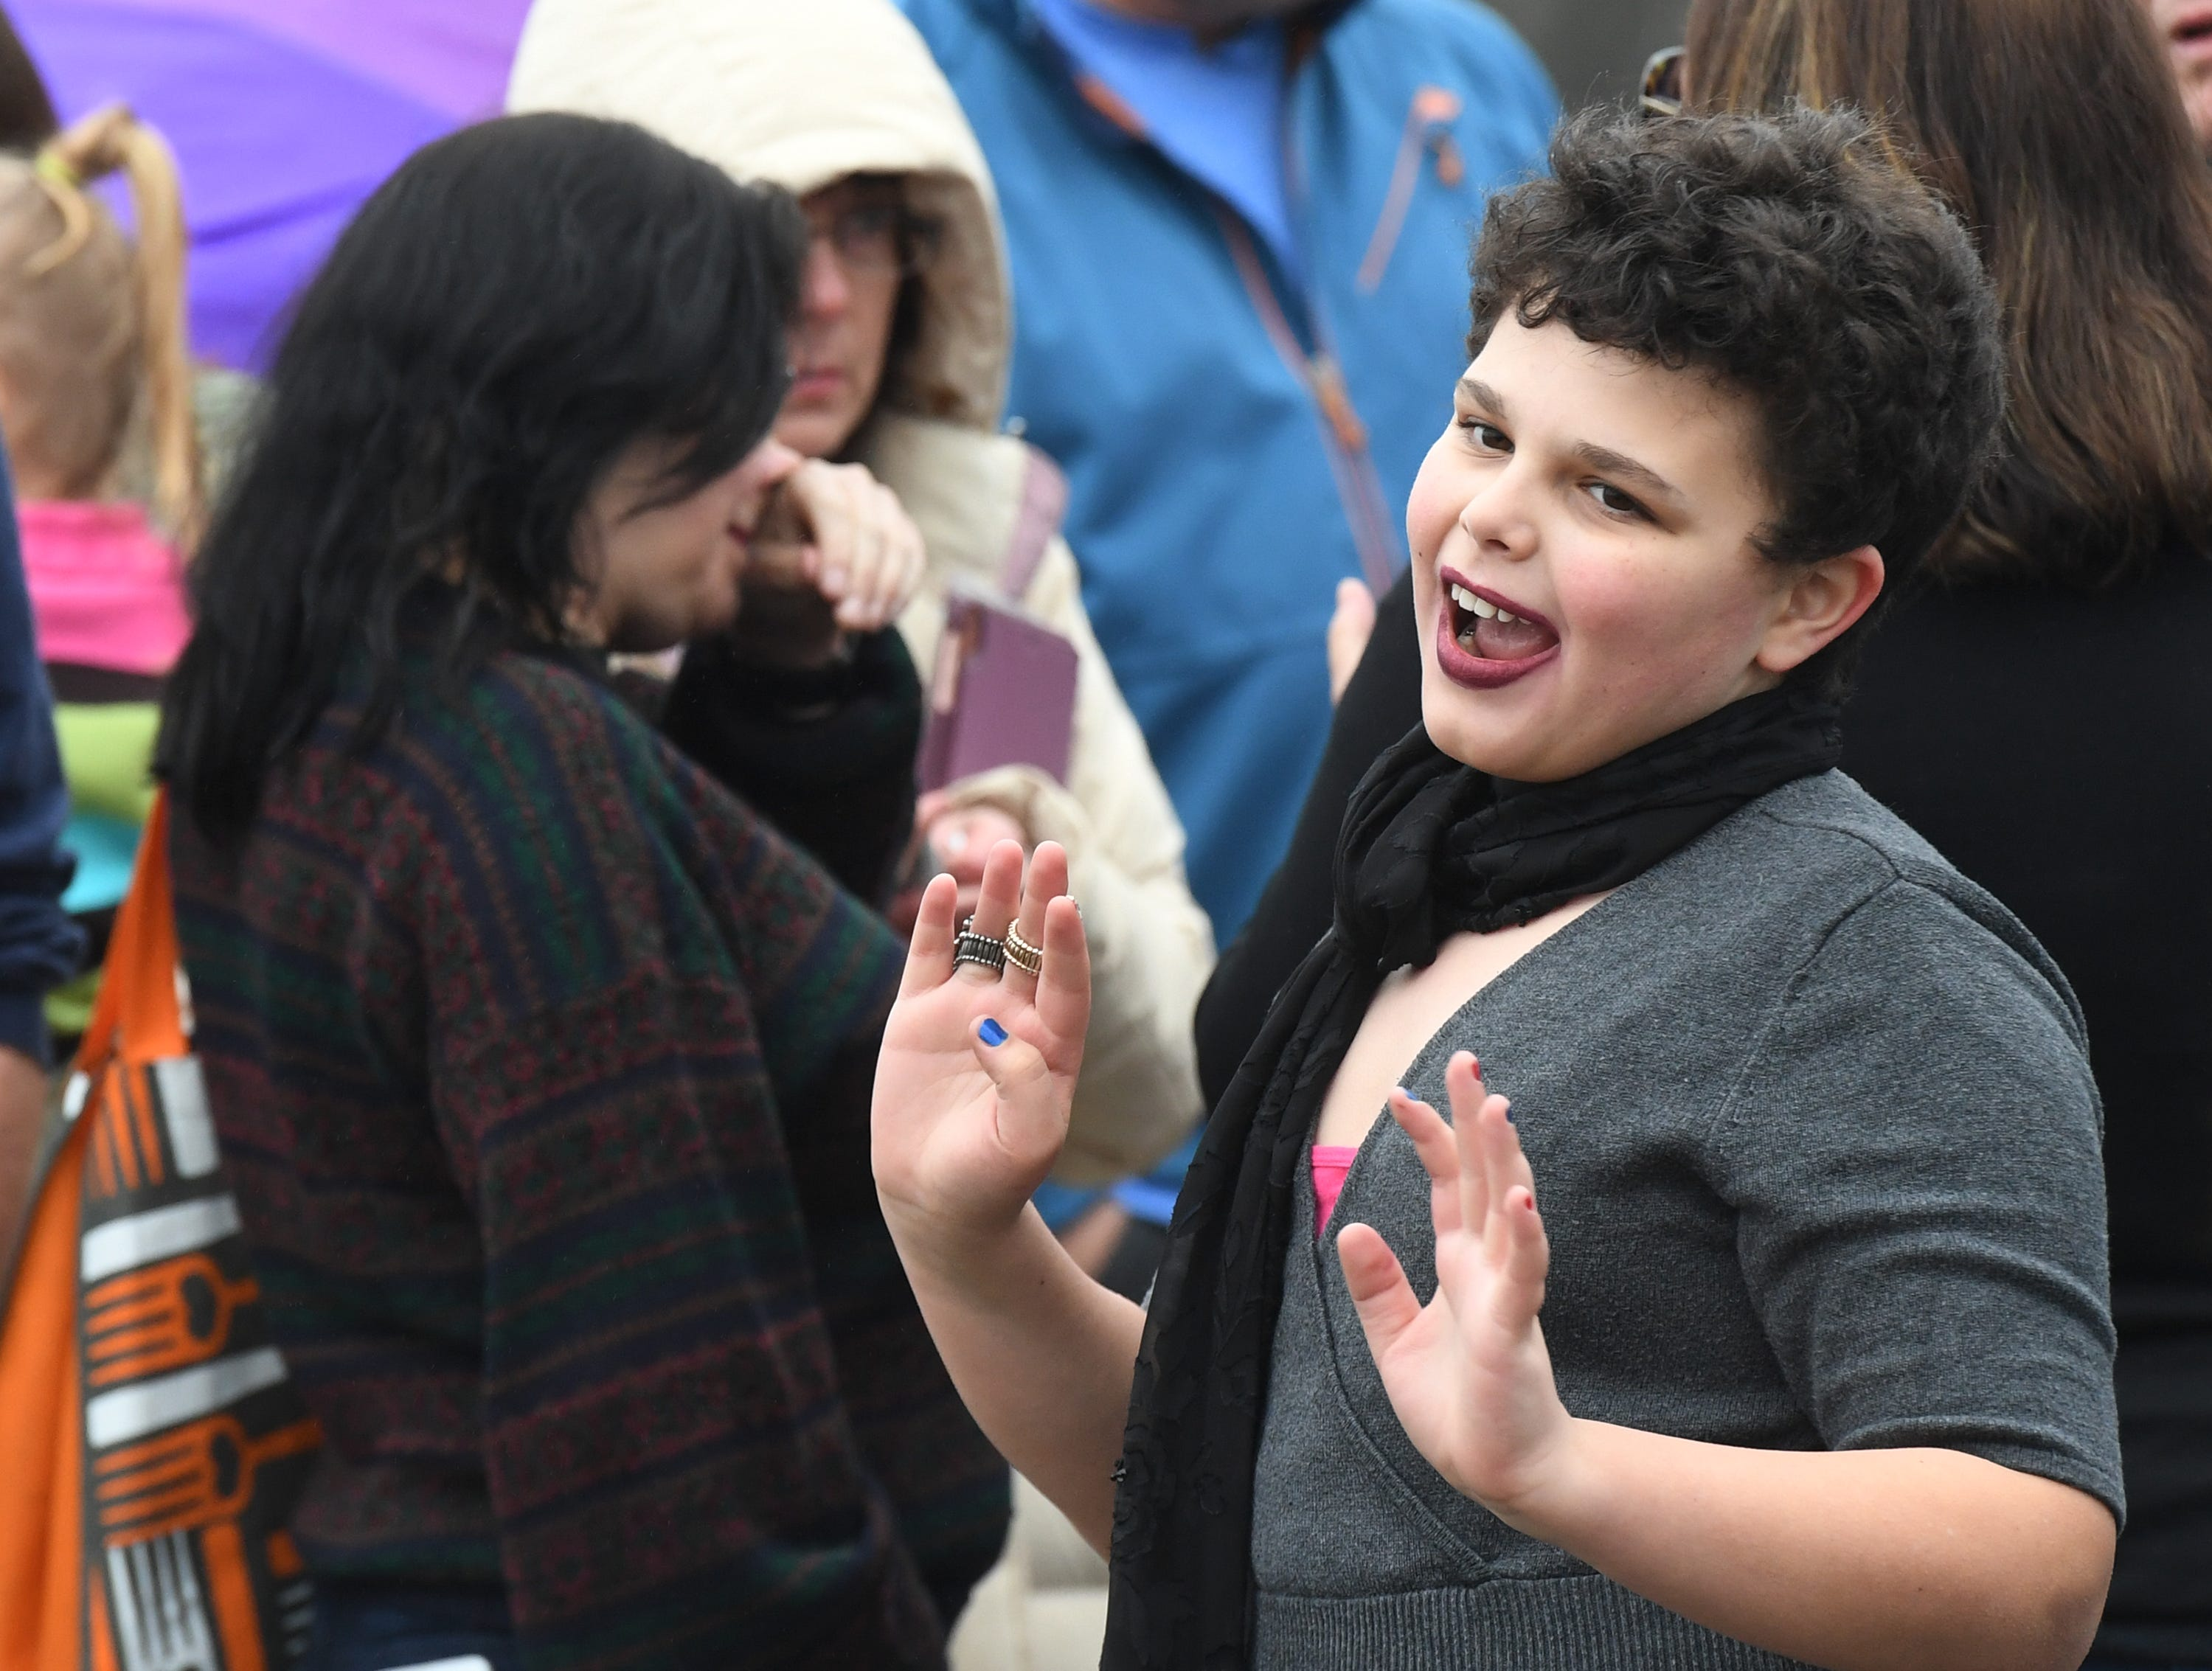 Luca Blocher, 11, of Greenville, waits in line for Drag Queen Story Hour at Five Forks Branch Library Sunday, Feb. 17, 2019.